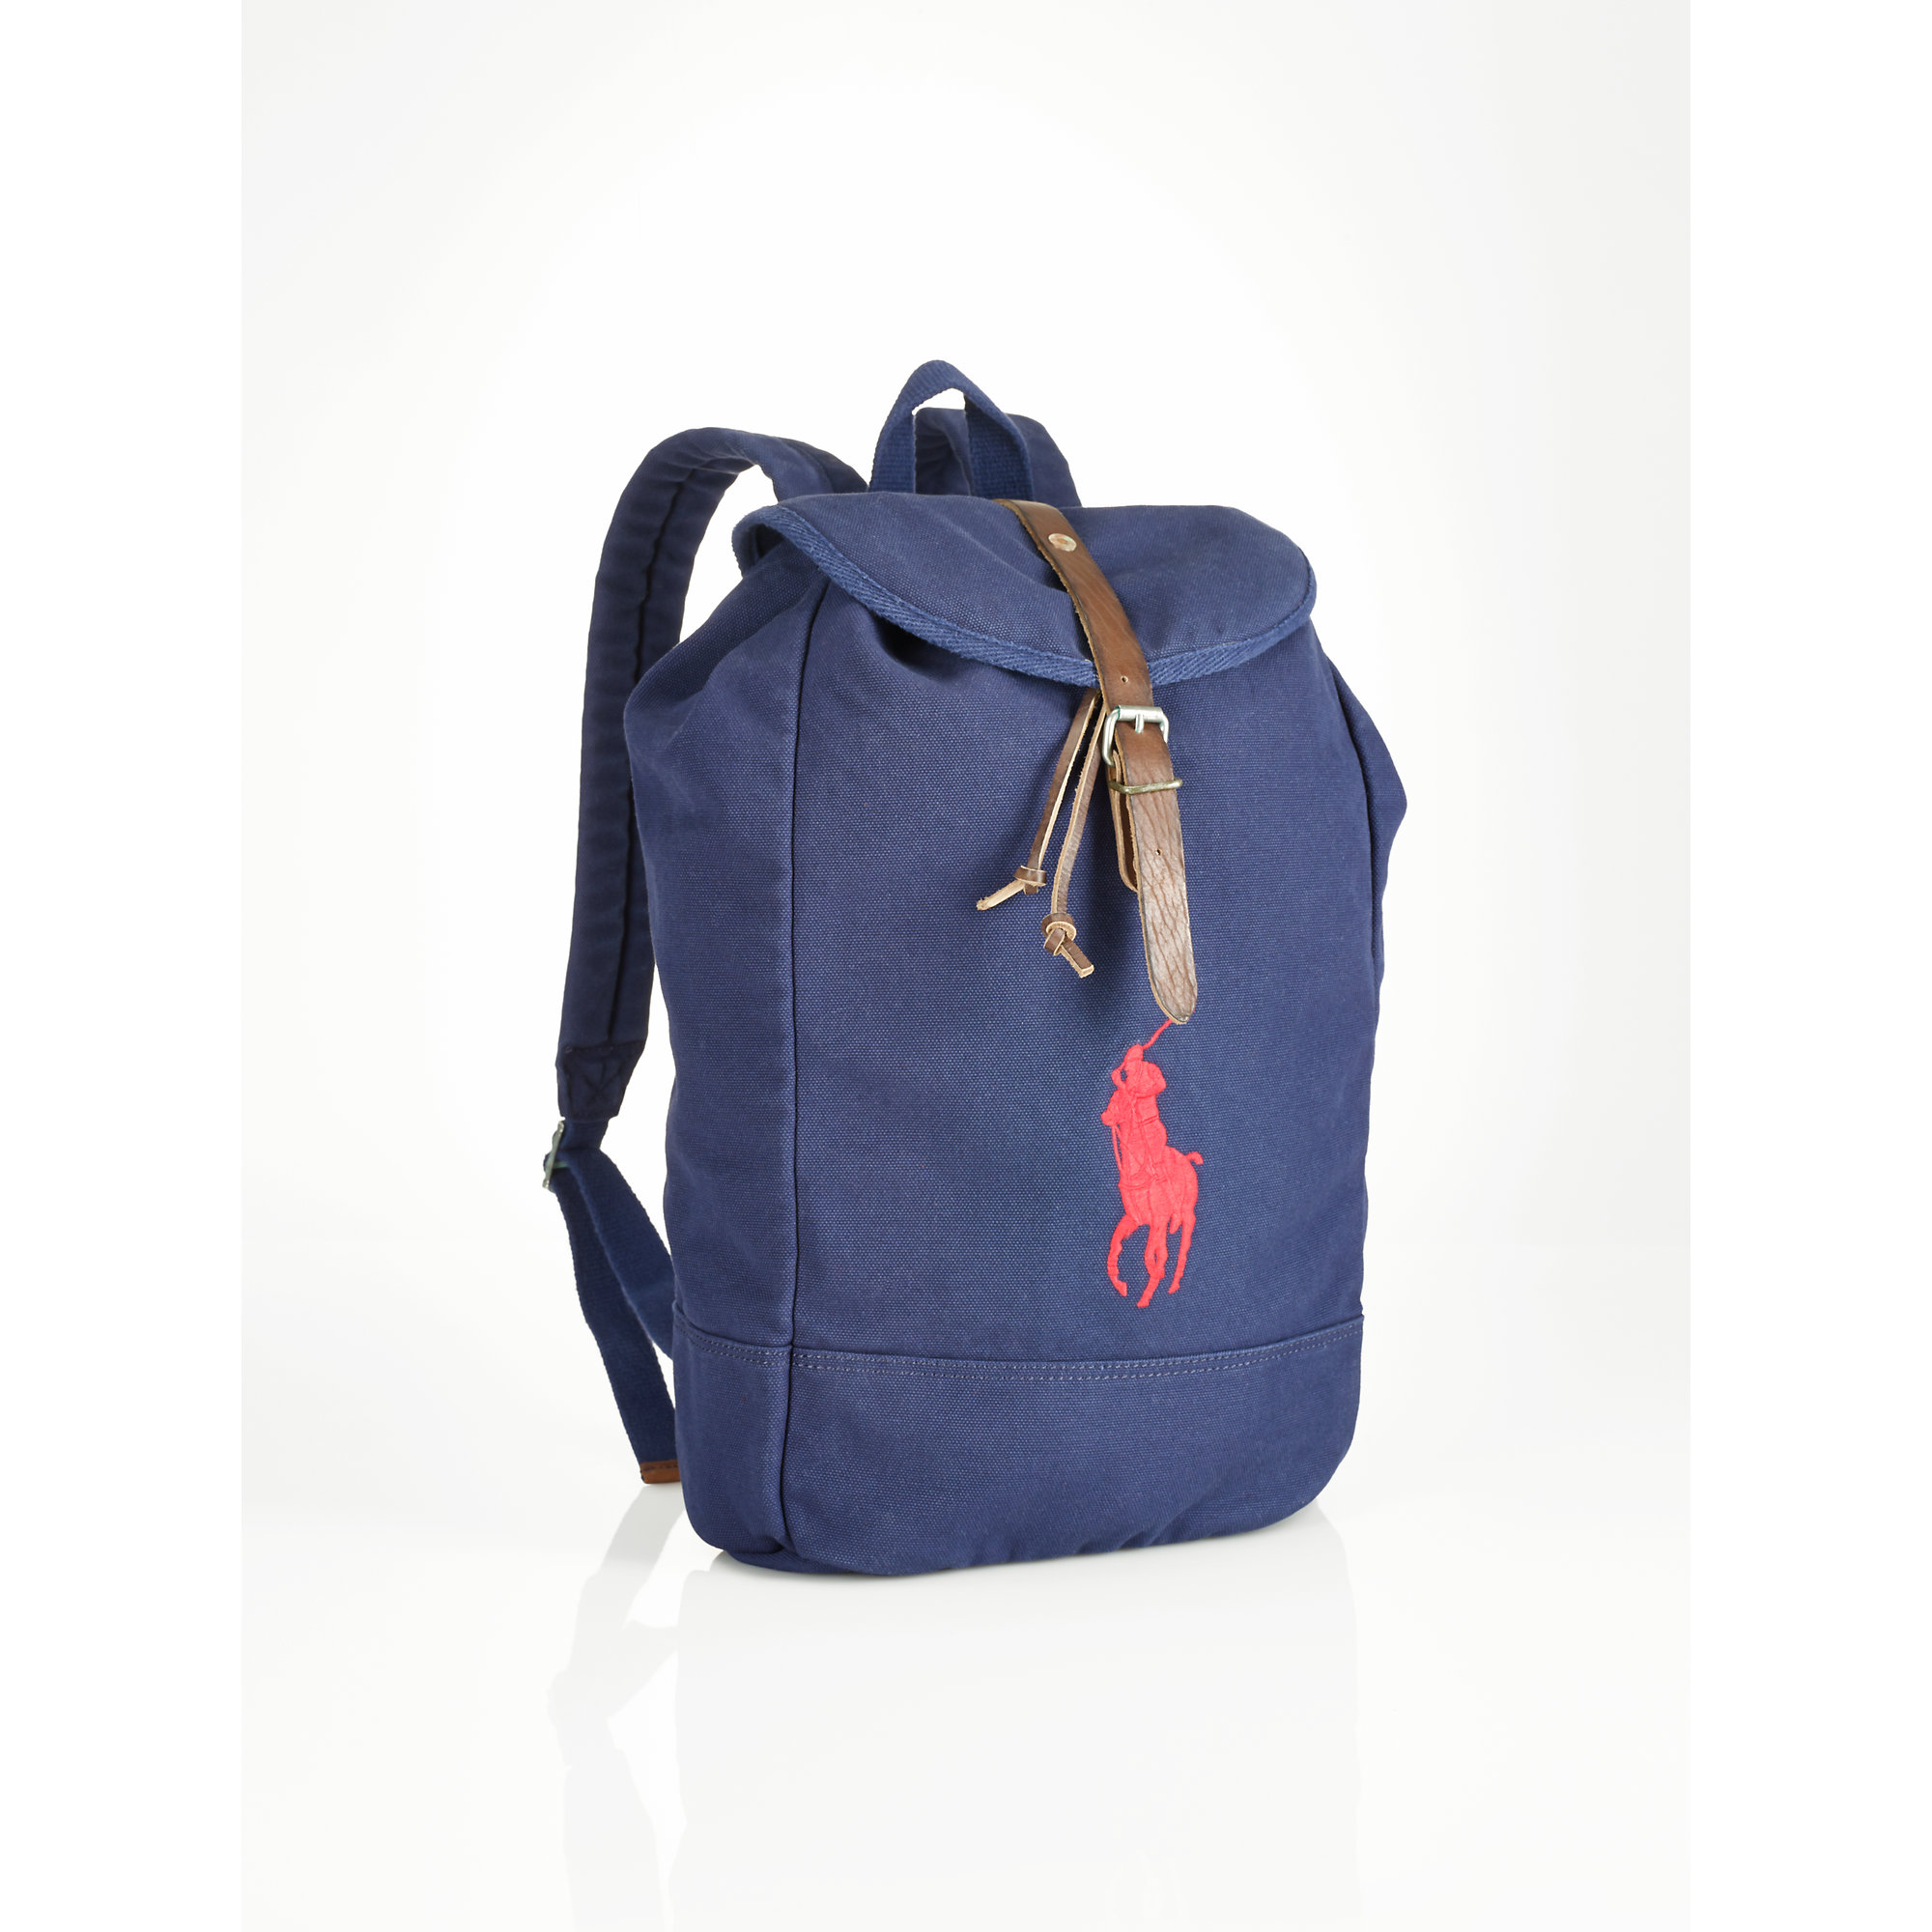 5143eb392c Lyst - Polo Ralph Lauren Big Pony Backpack in Blue for Men